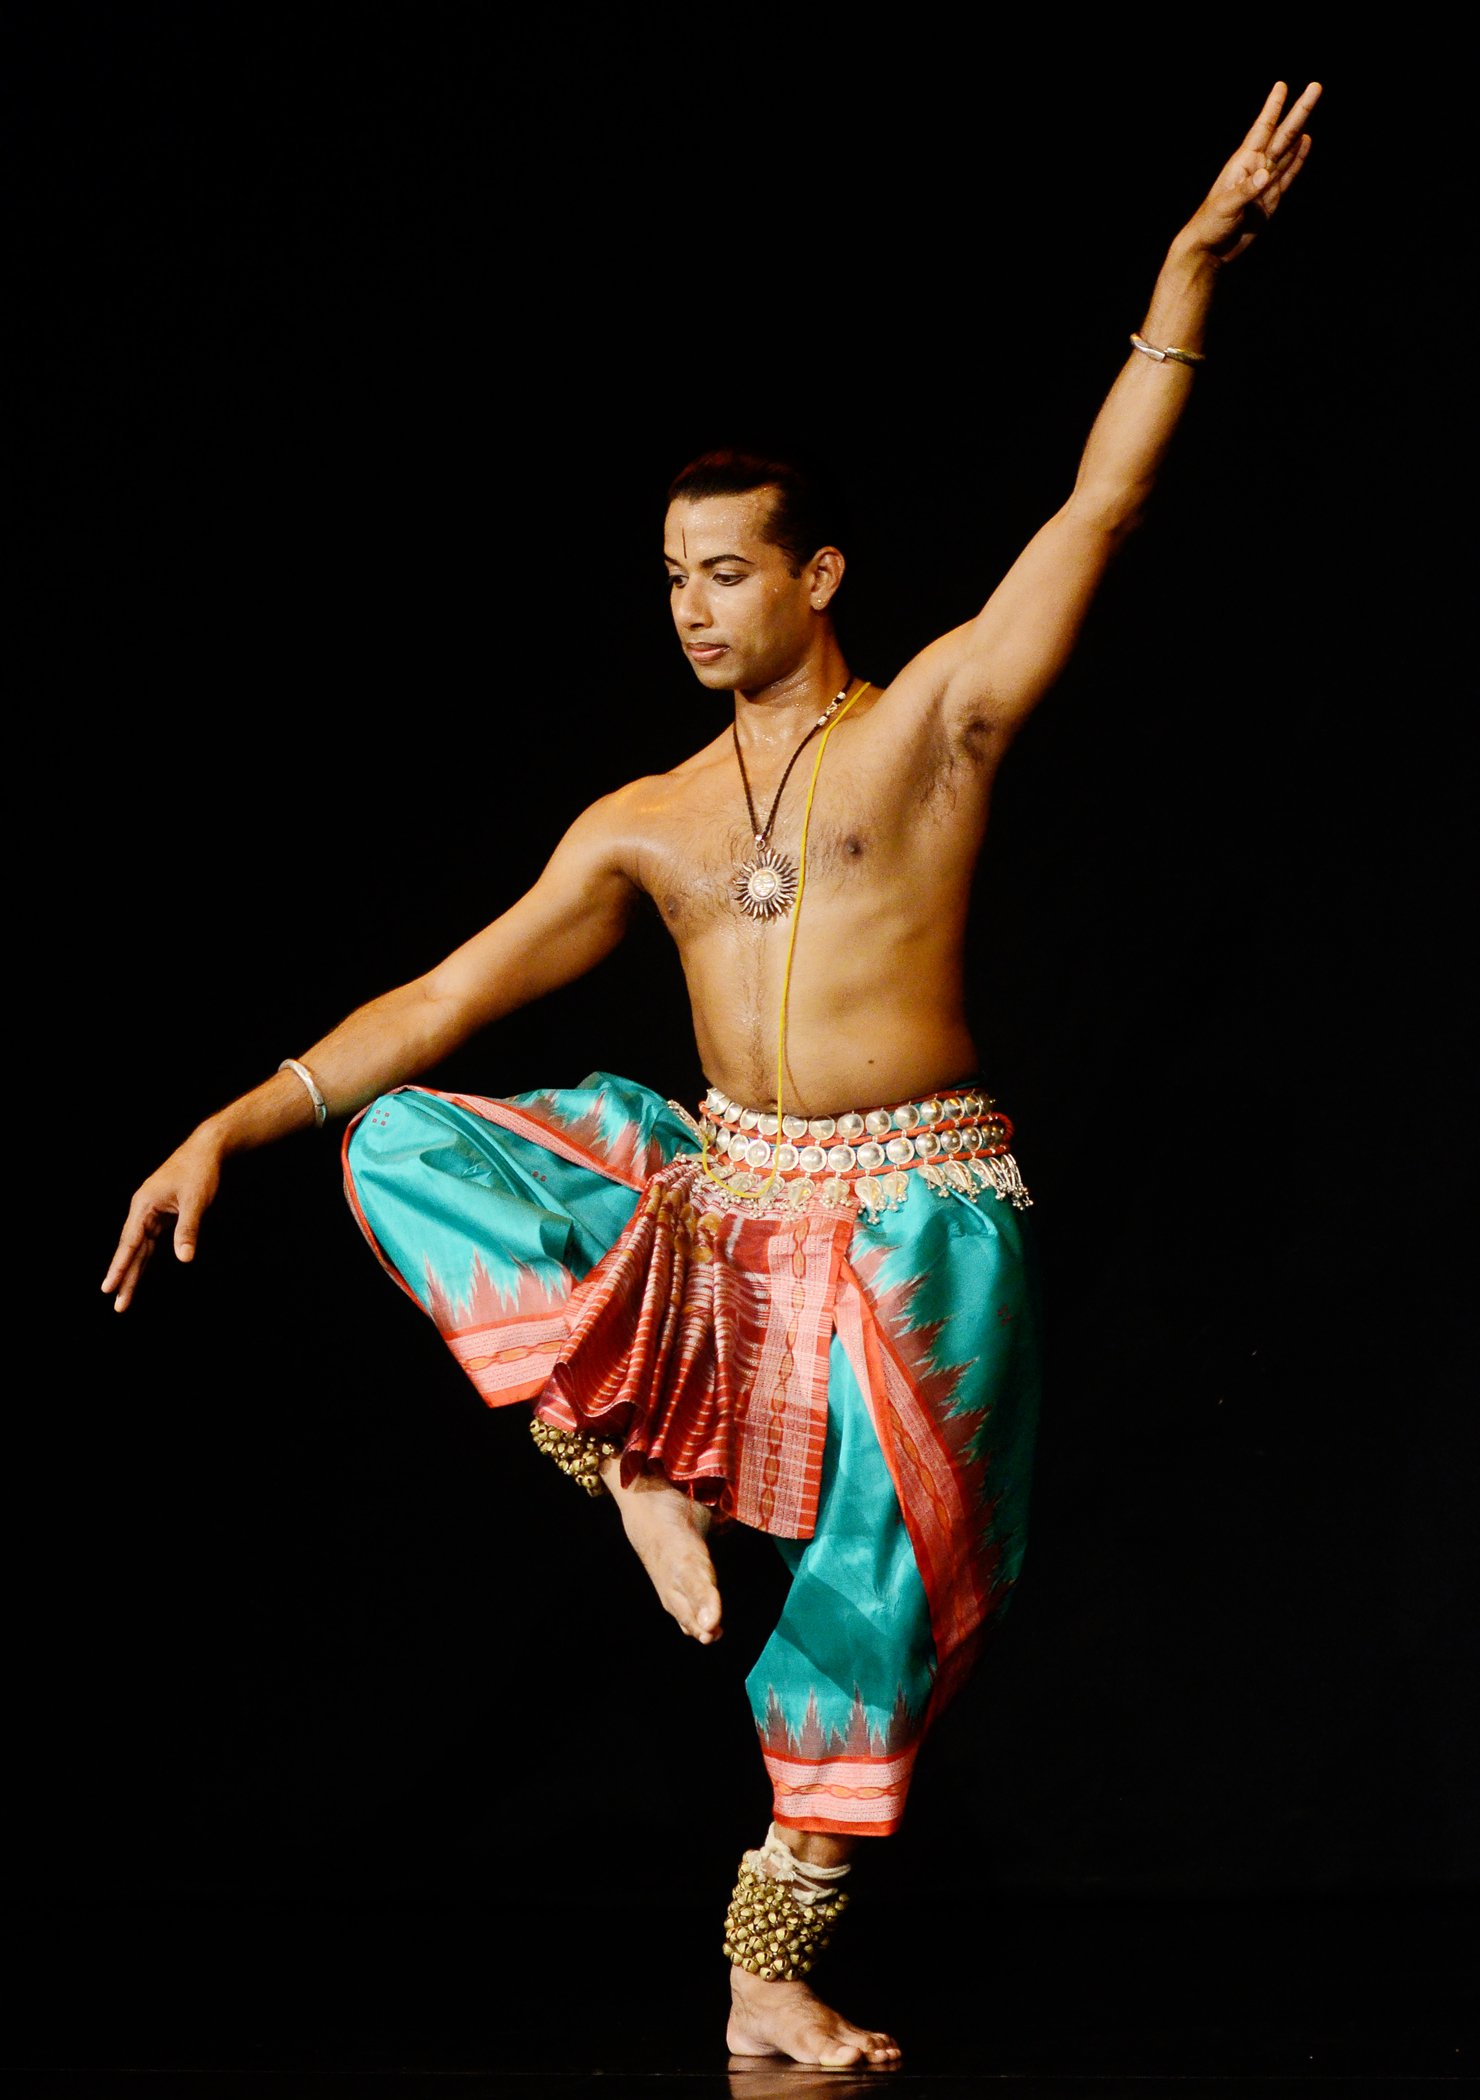 Nandi the Divine Bull : Odissi by Rahul Acharya during the NCPA Mudra Dance Festival 2016 at Experimental Theatre,NCPA on 23/04/2016.  Photos By : NARENDRA DANGIYA